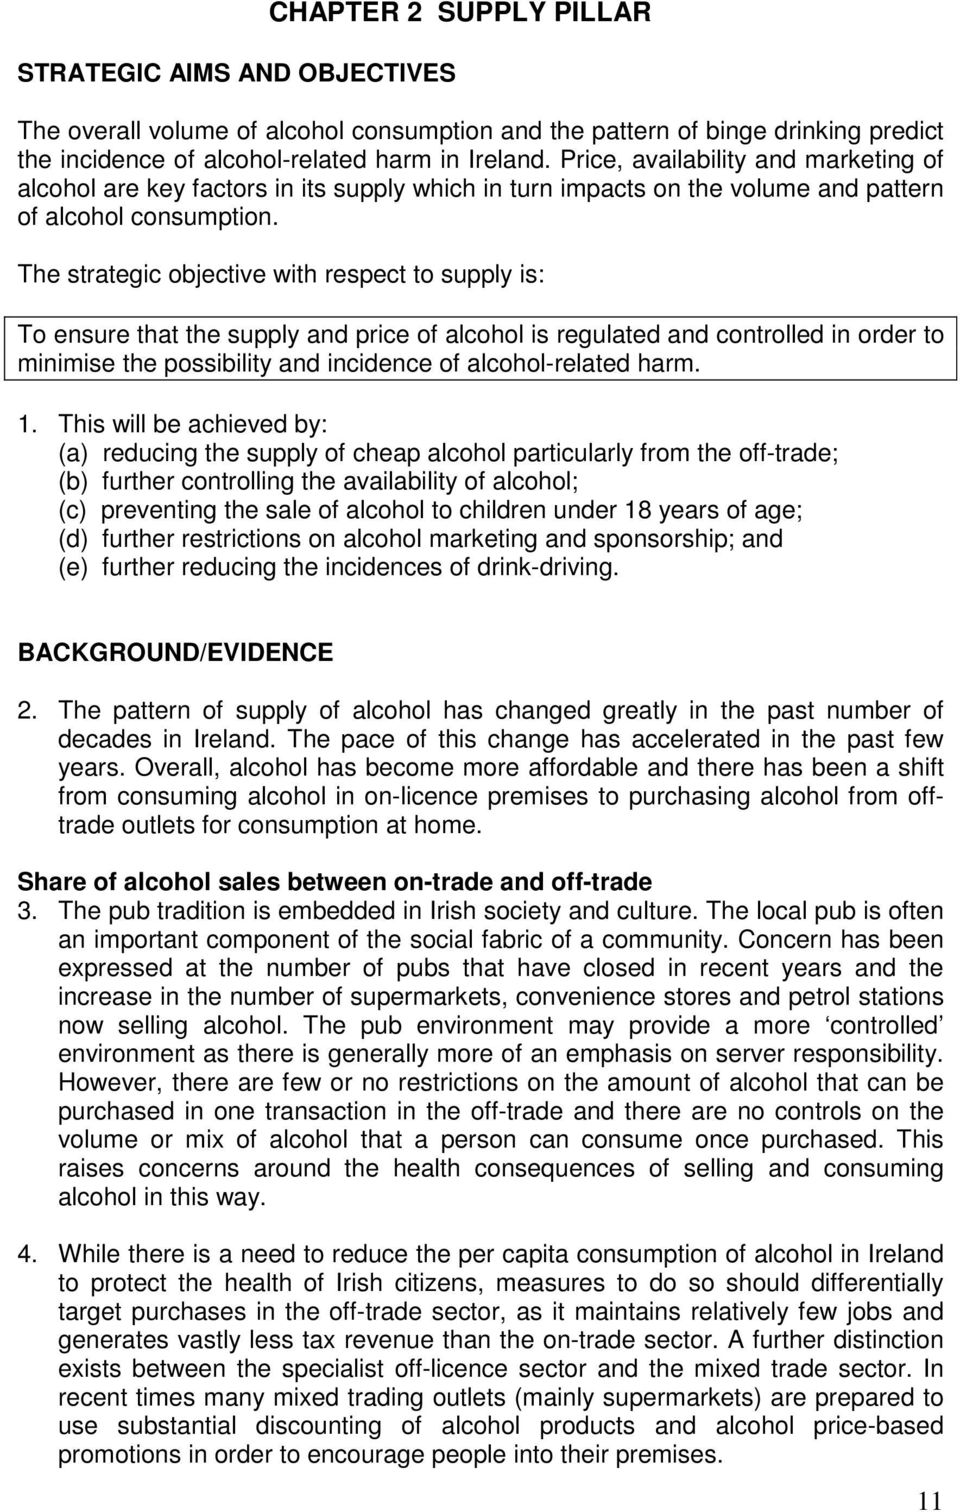 The strategic objective with respect to supply is: To ensure that the supply and price of alcohol is regulated and controlled in order to minimise the possibility and incidence of alcohol-related